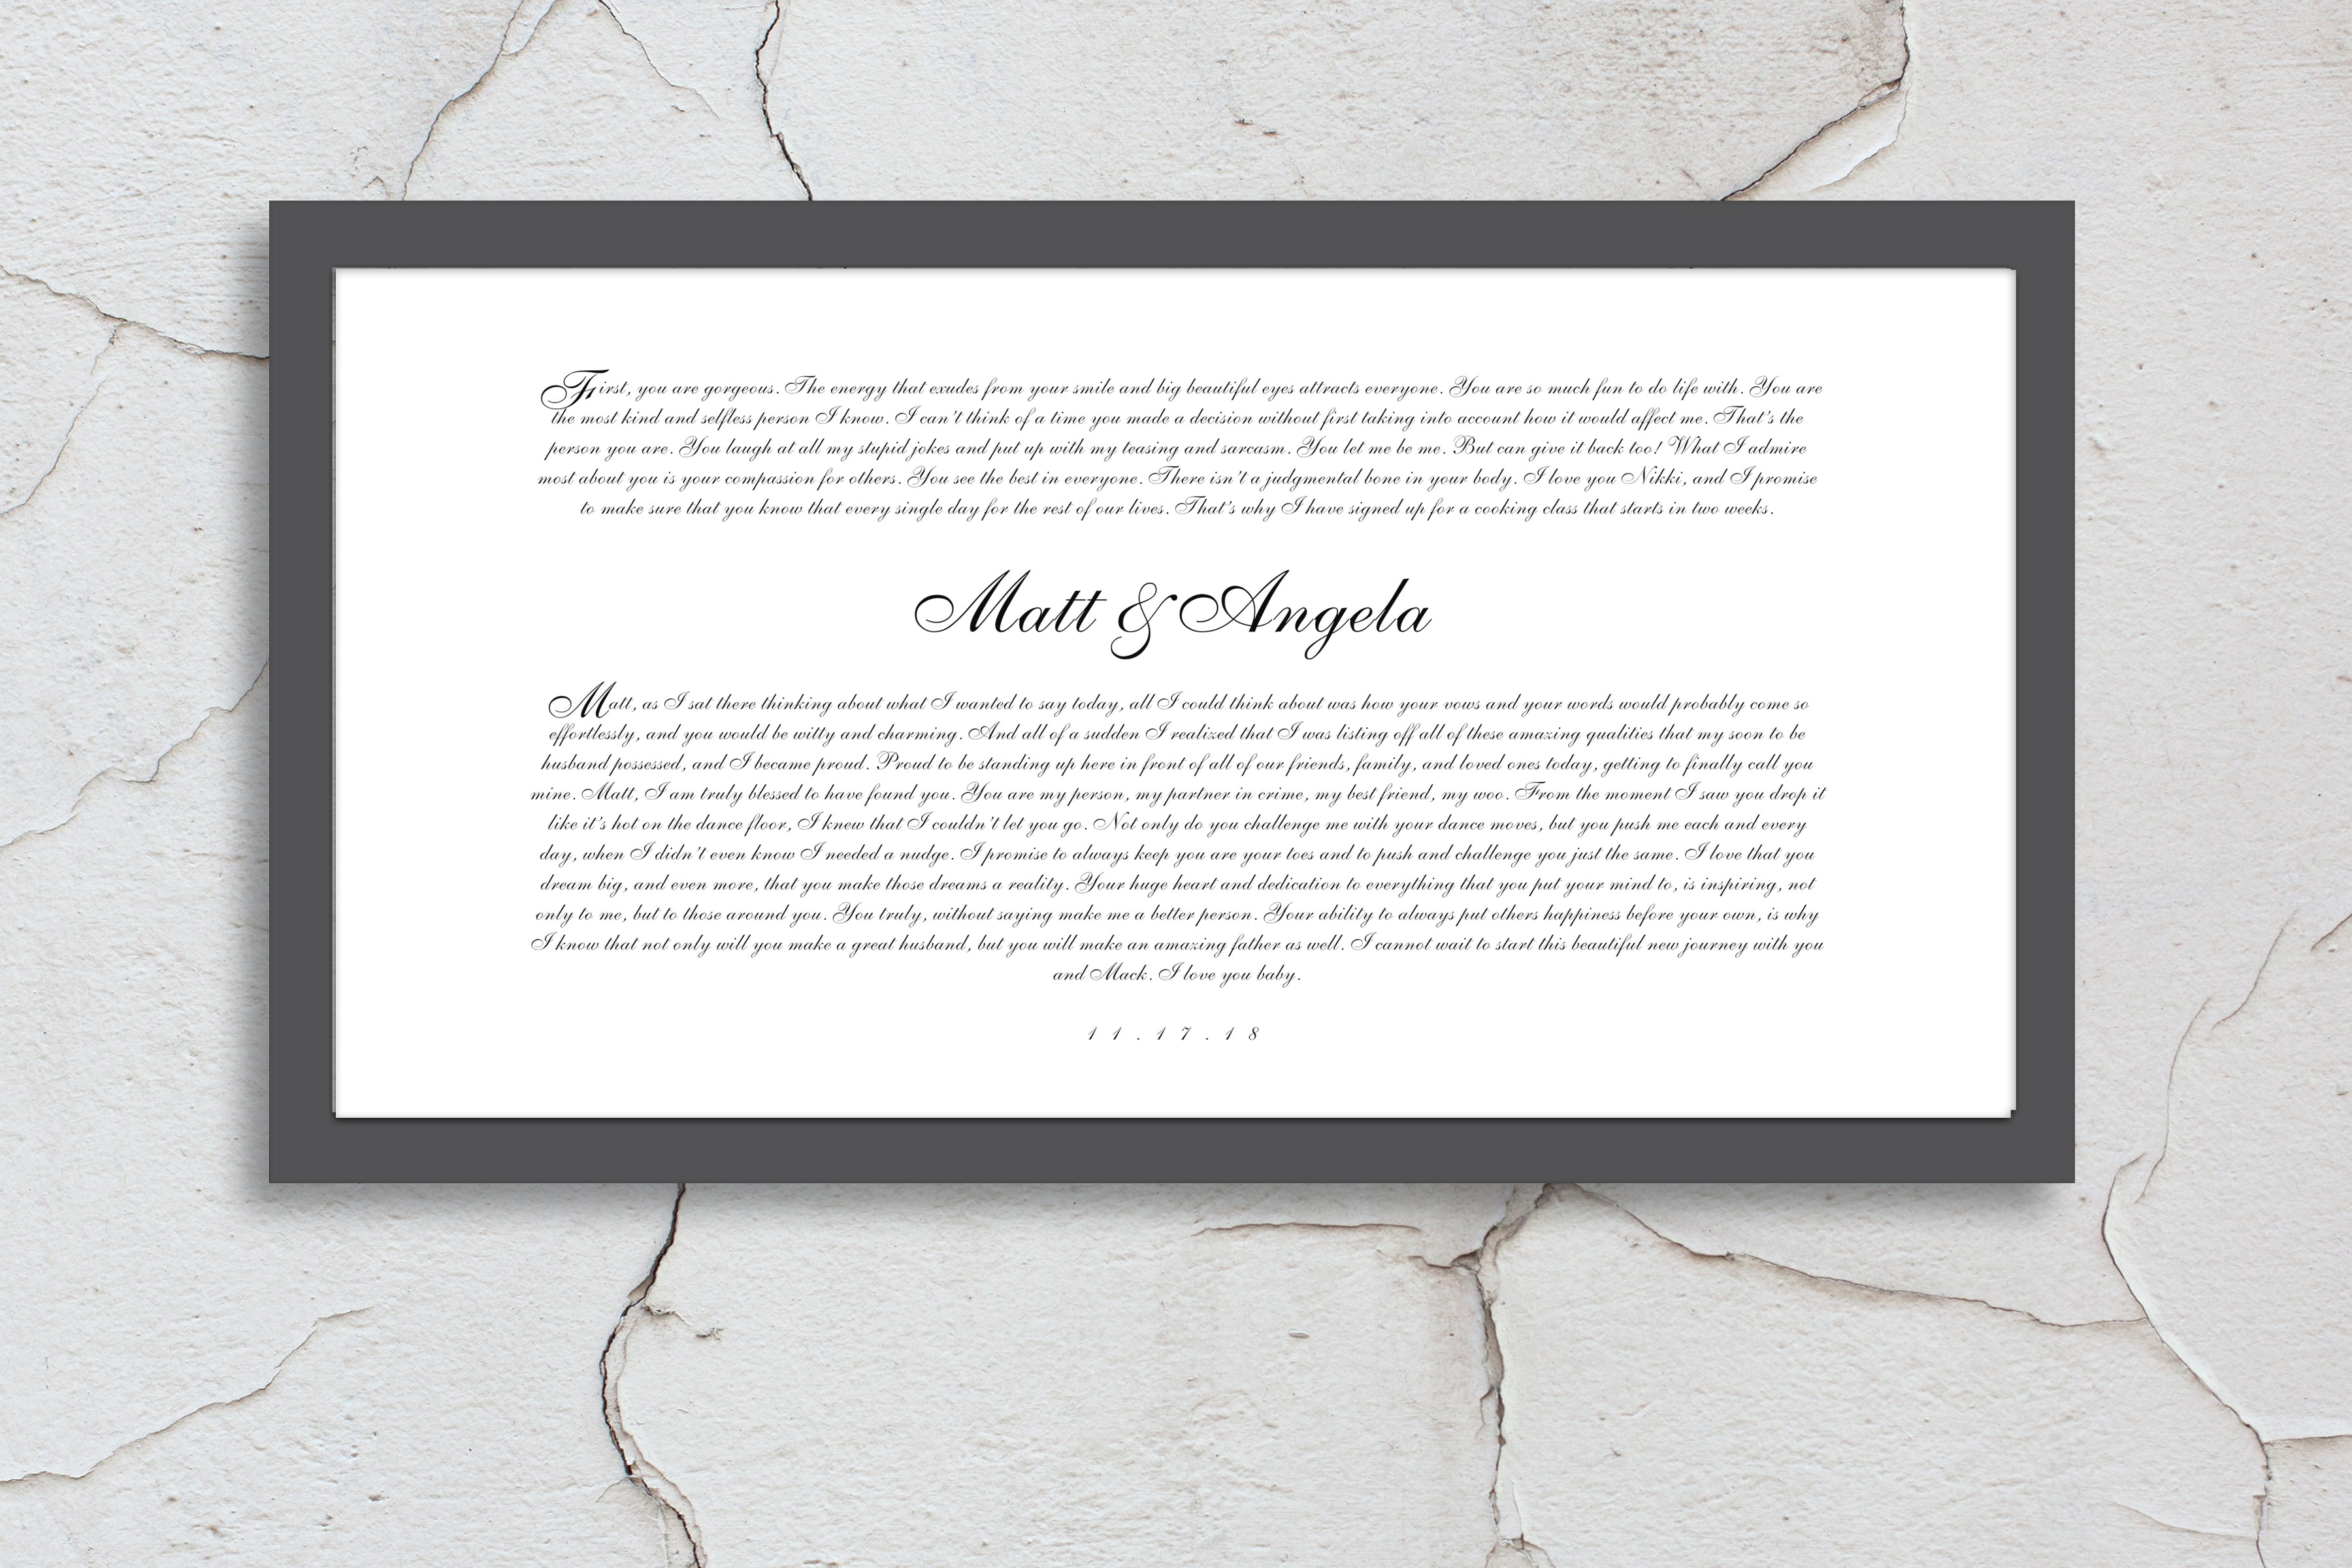 Romantic Anniversary Wedding Vow Art - Hunnycomb Proverbs - Wedding gift ideas - paper anniversary gifts